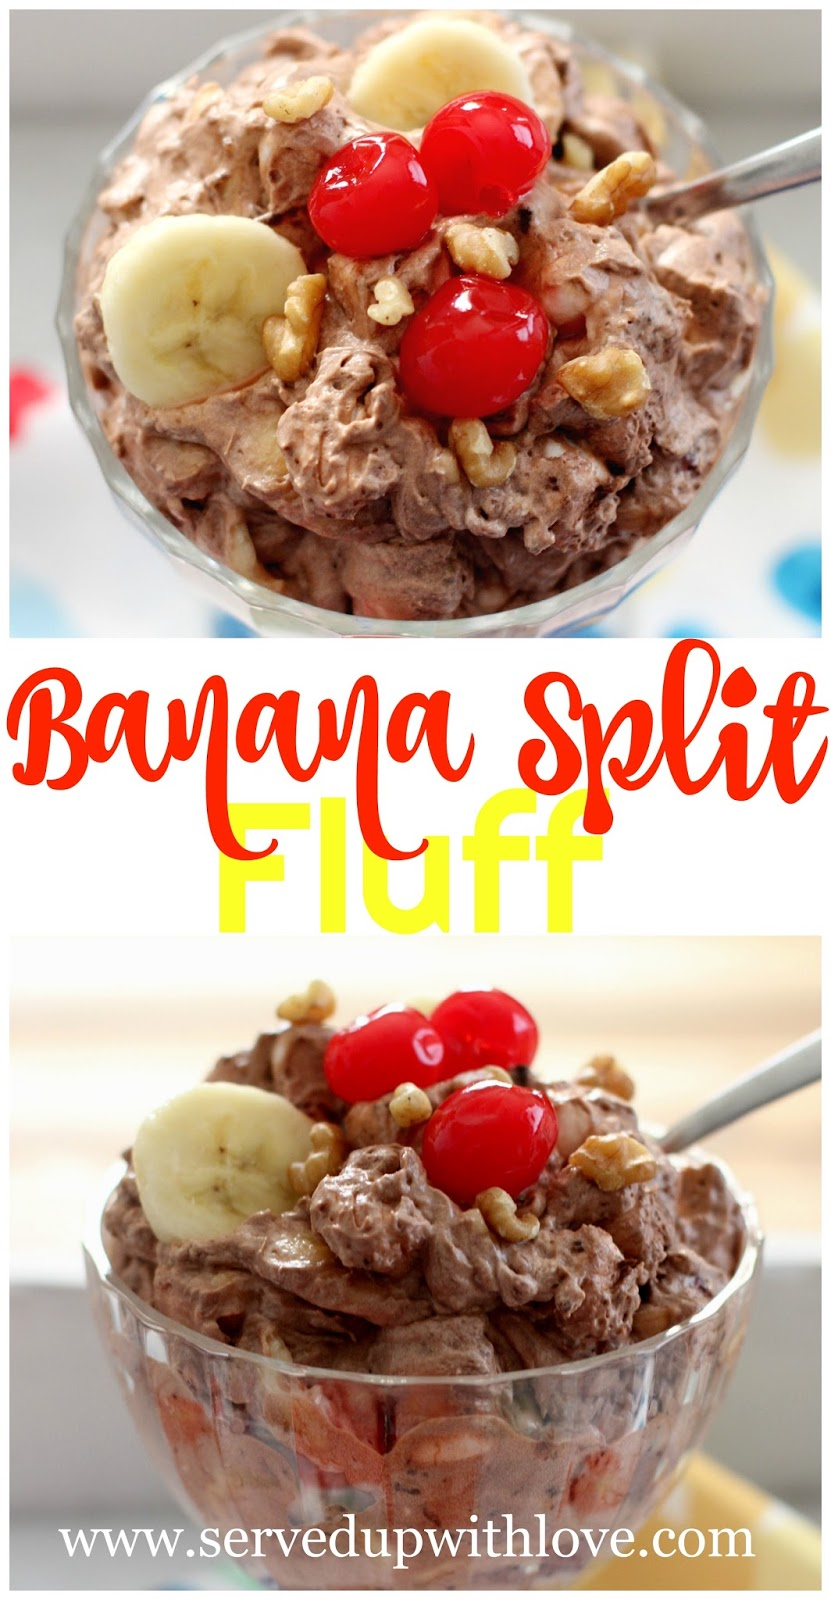 Served Up With Love: Banana Split Fluff